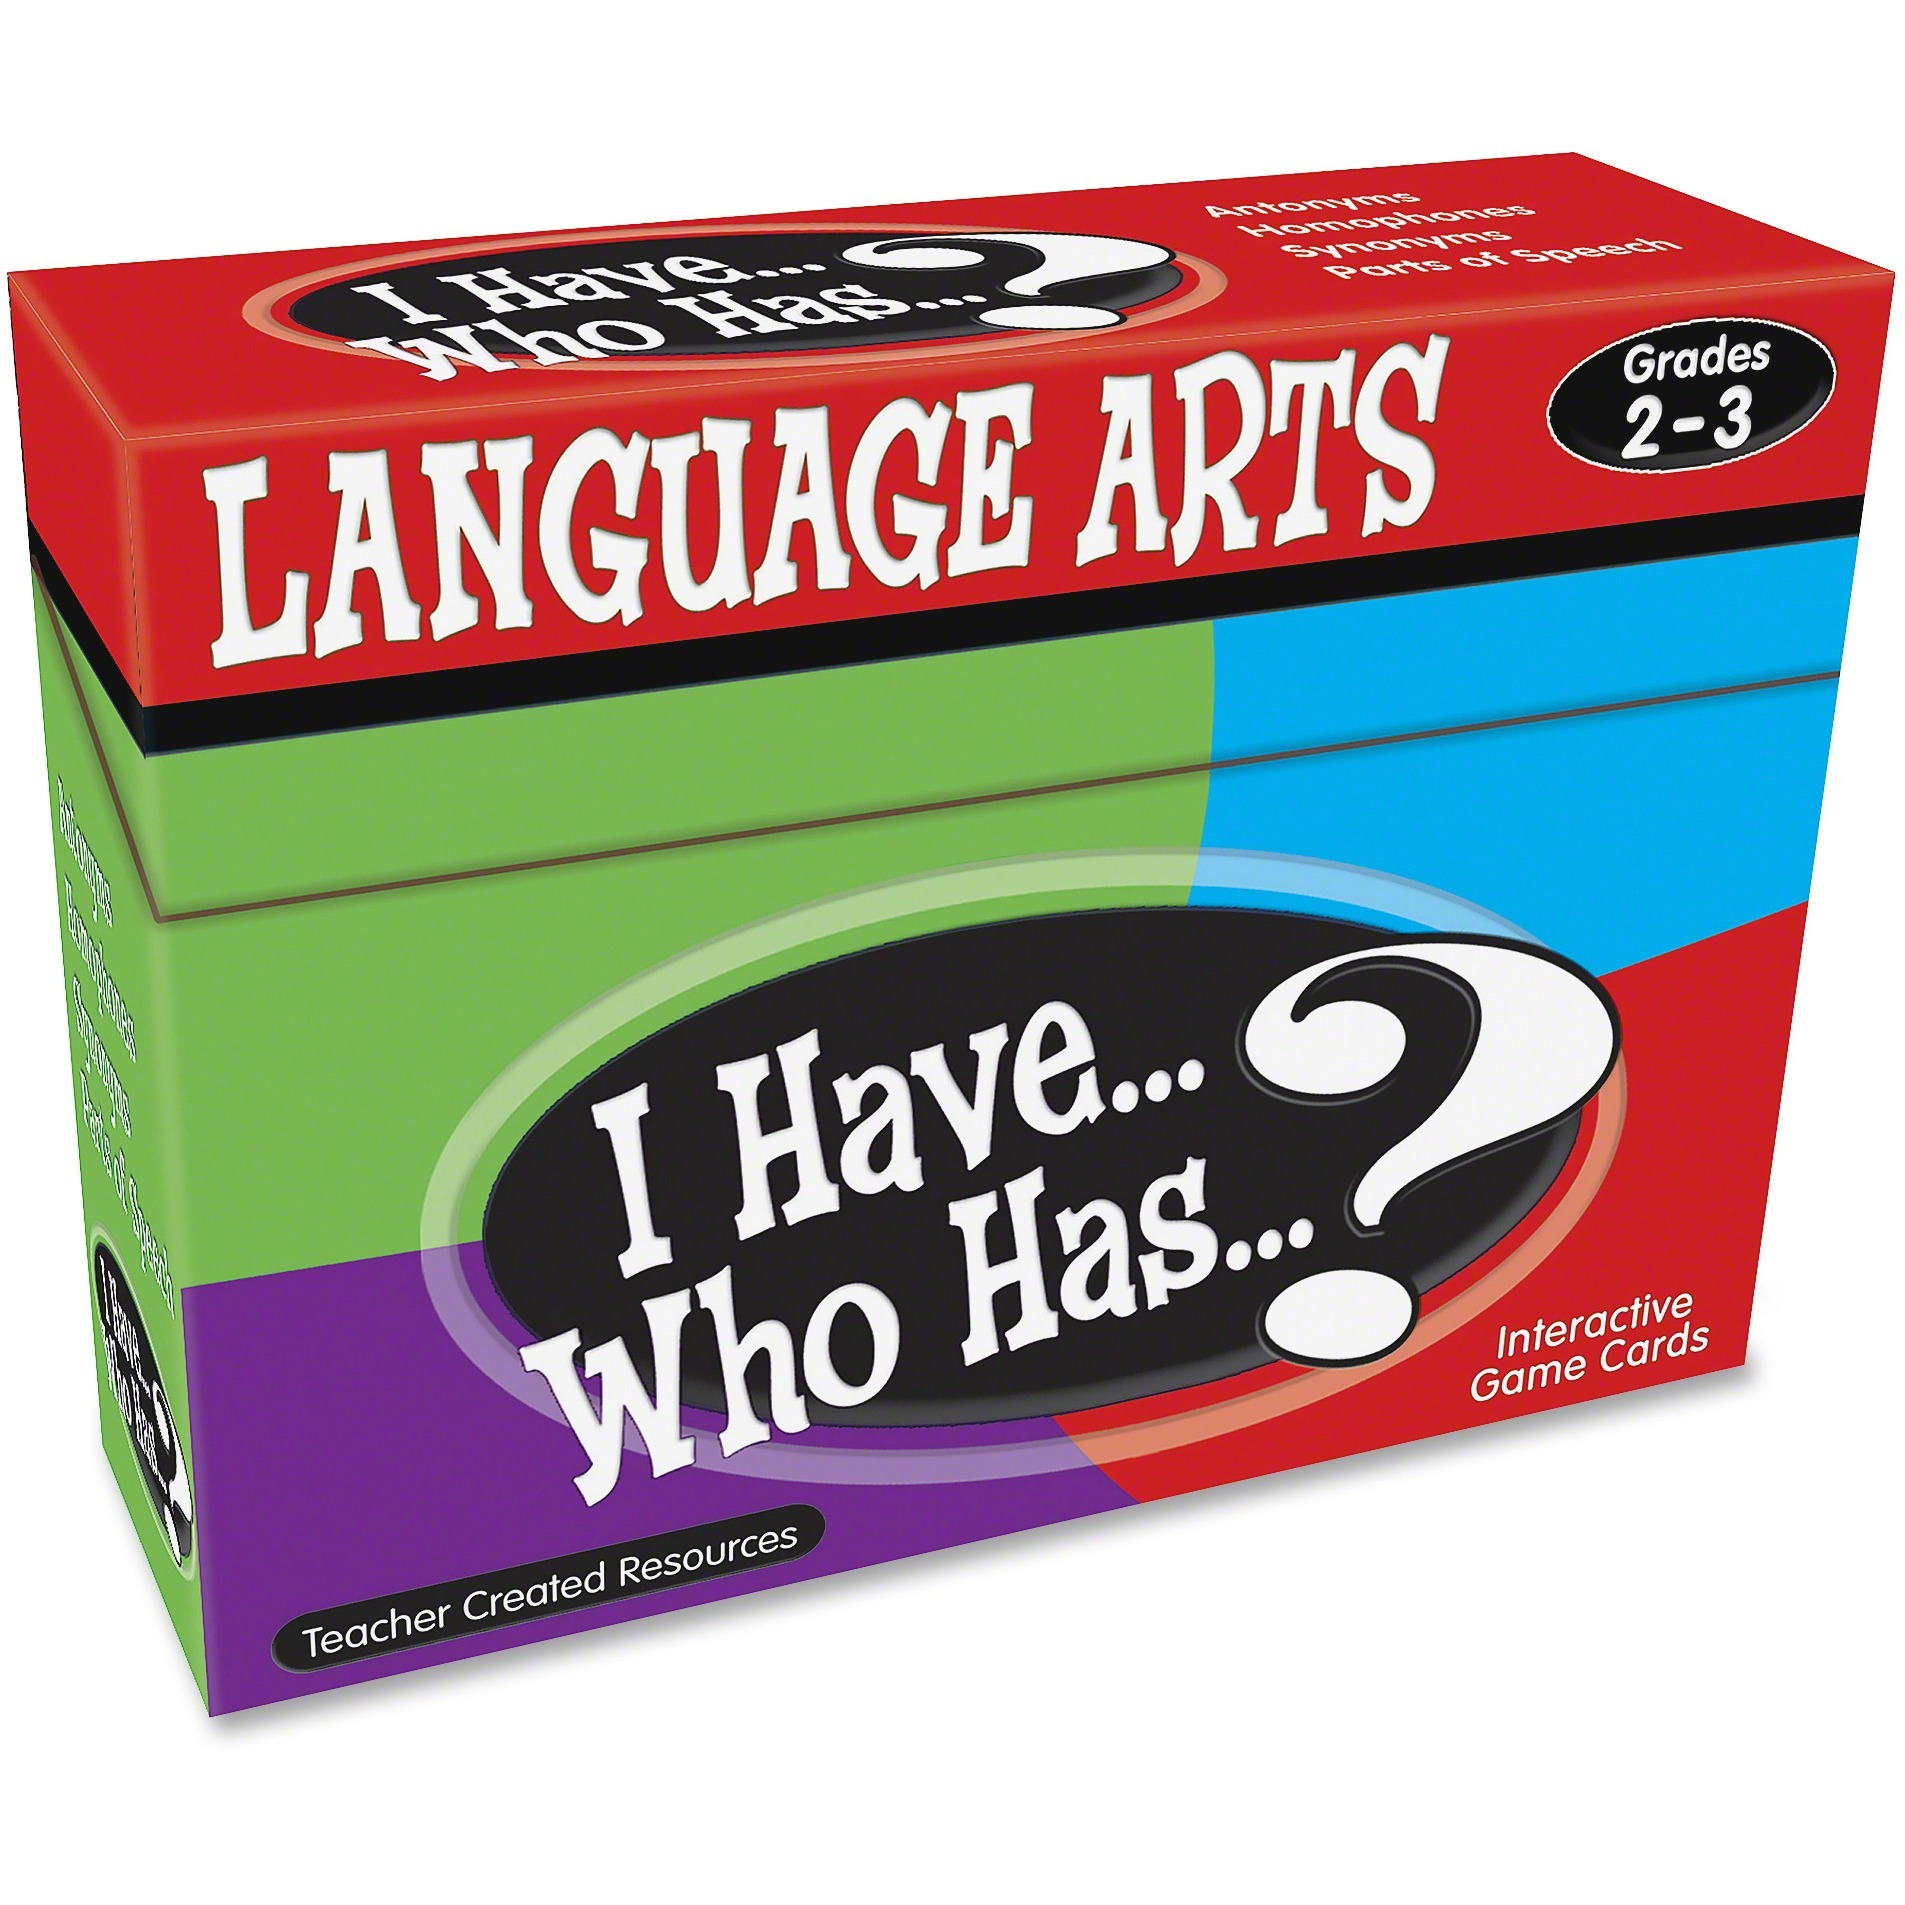 Teacher Created Resources, TCR7813, Grades 2-3 Language Arts Game, 1 Each, Multi